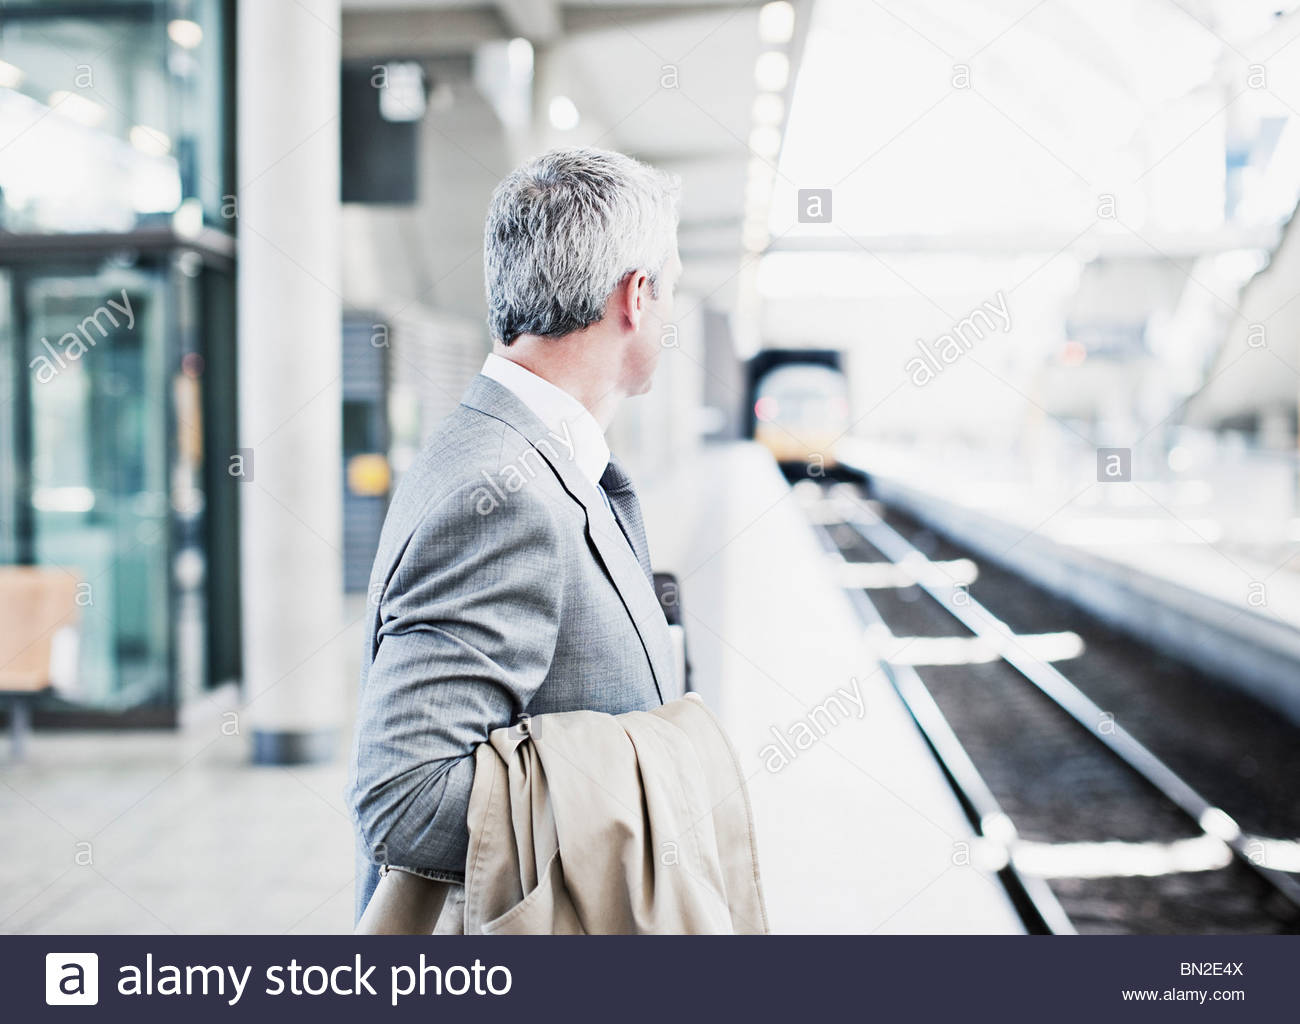 Businessman waiting for train on platform - Stock Image